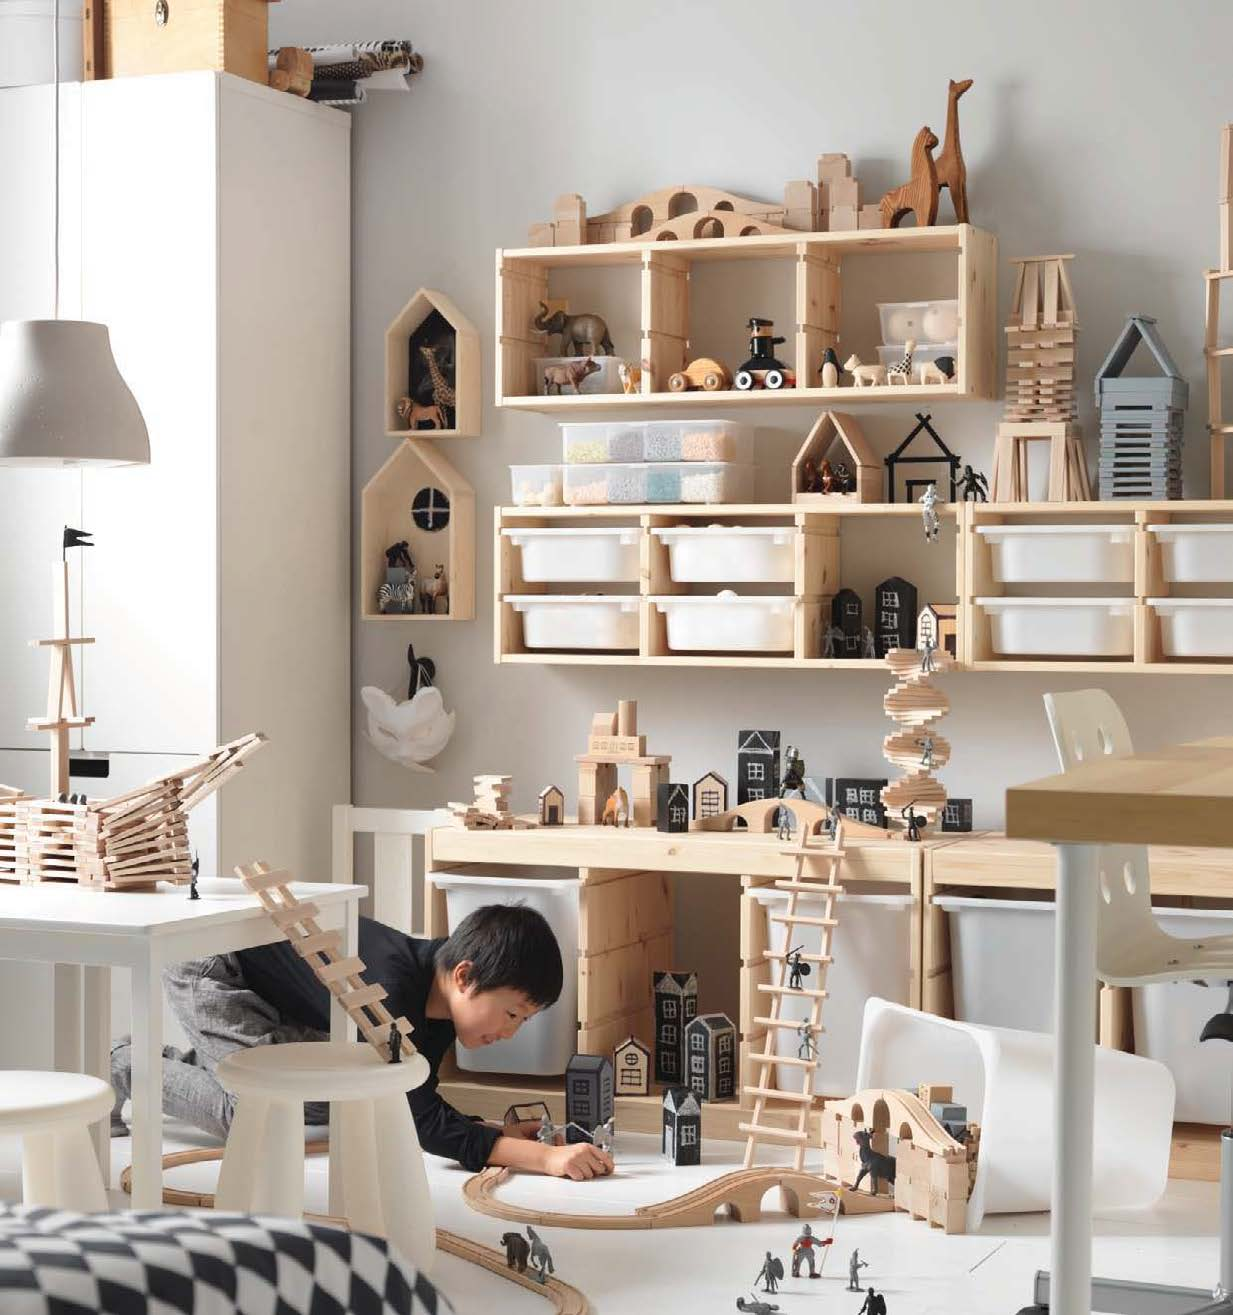 IKEA only - can be so cool when done right